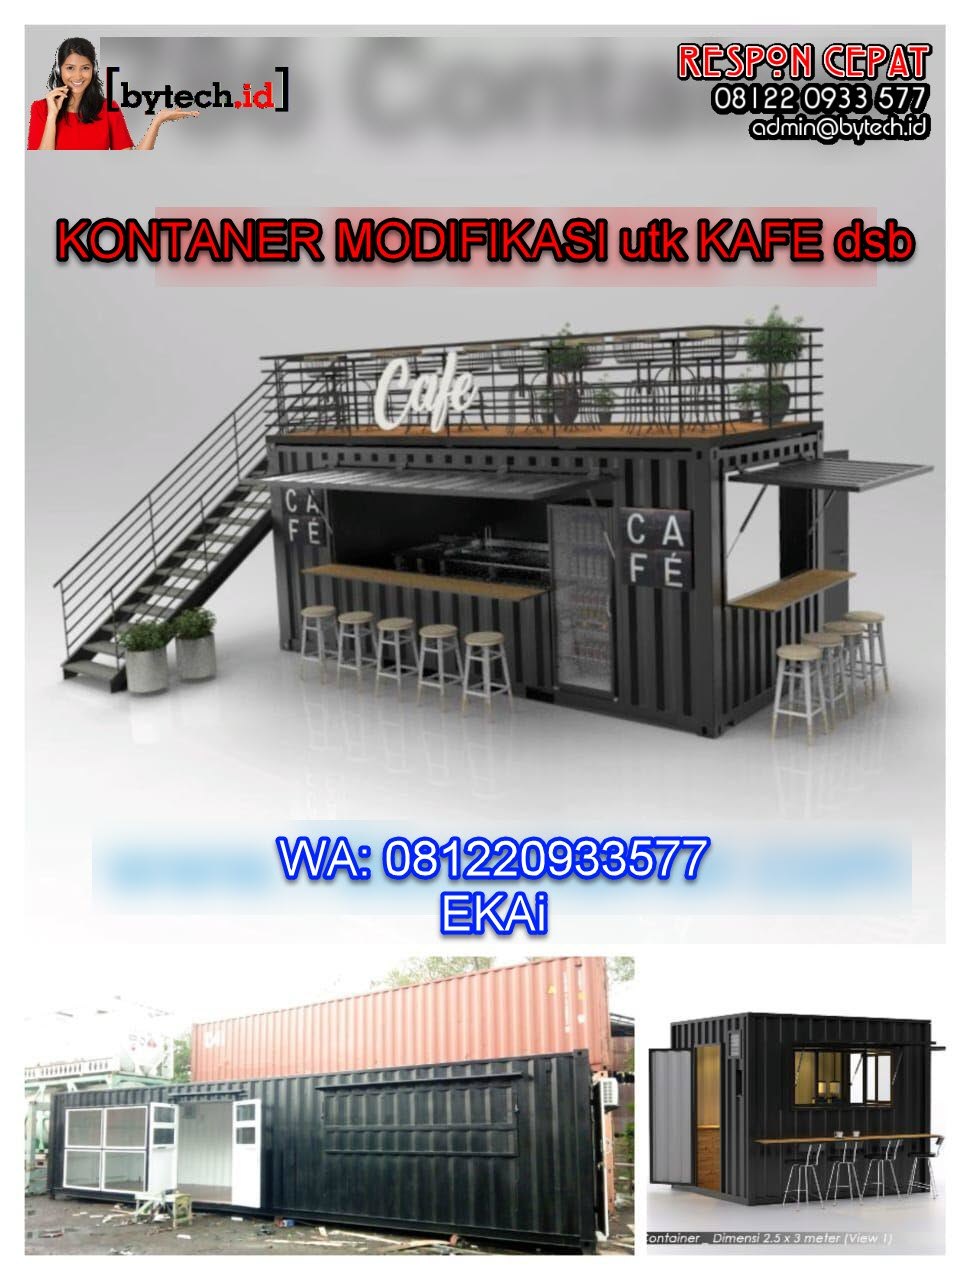 kontainer office - kontainer modifikasi